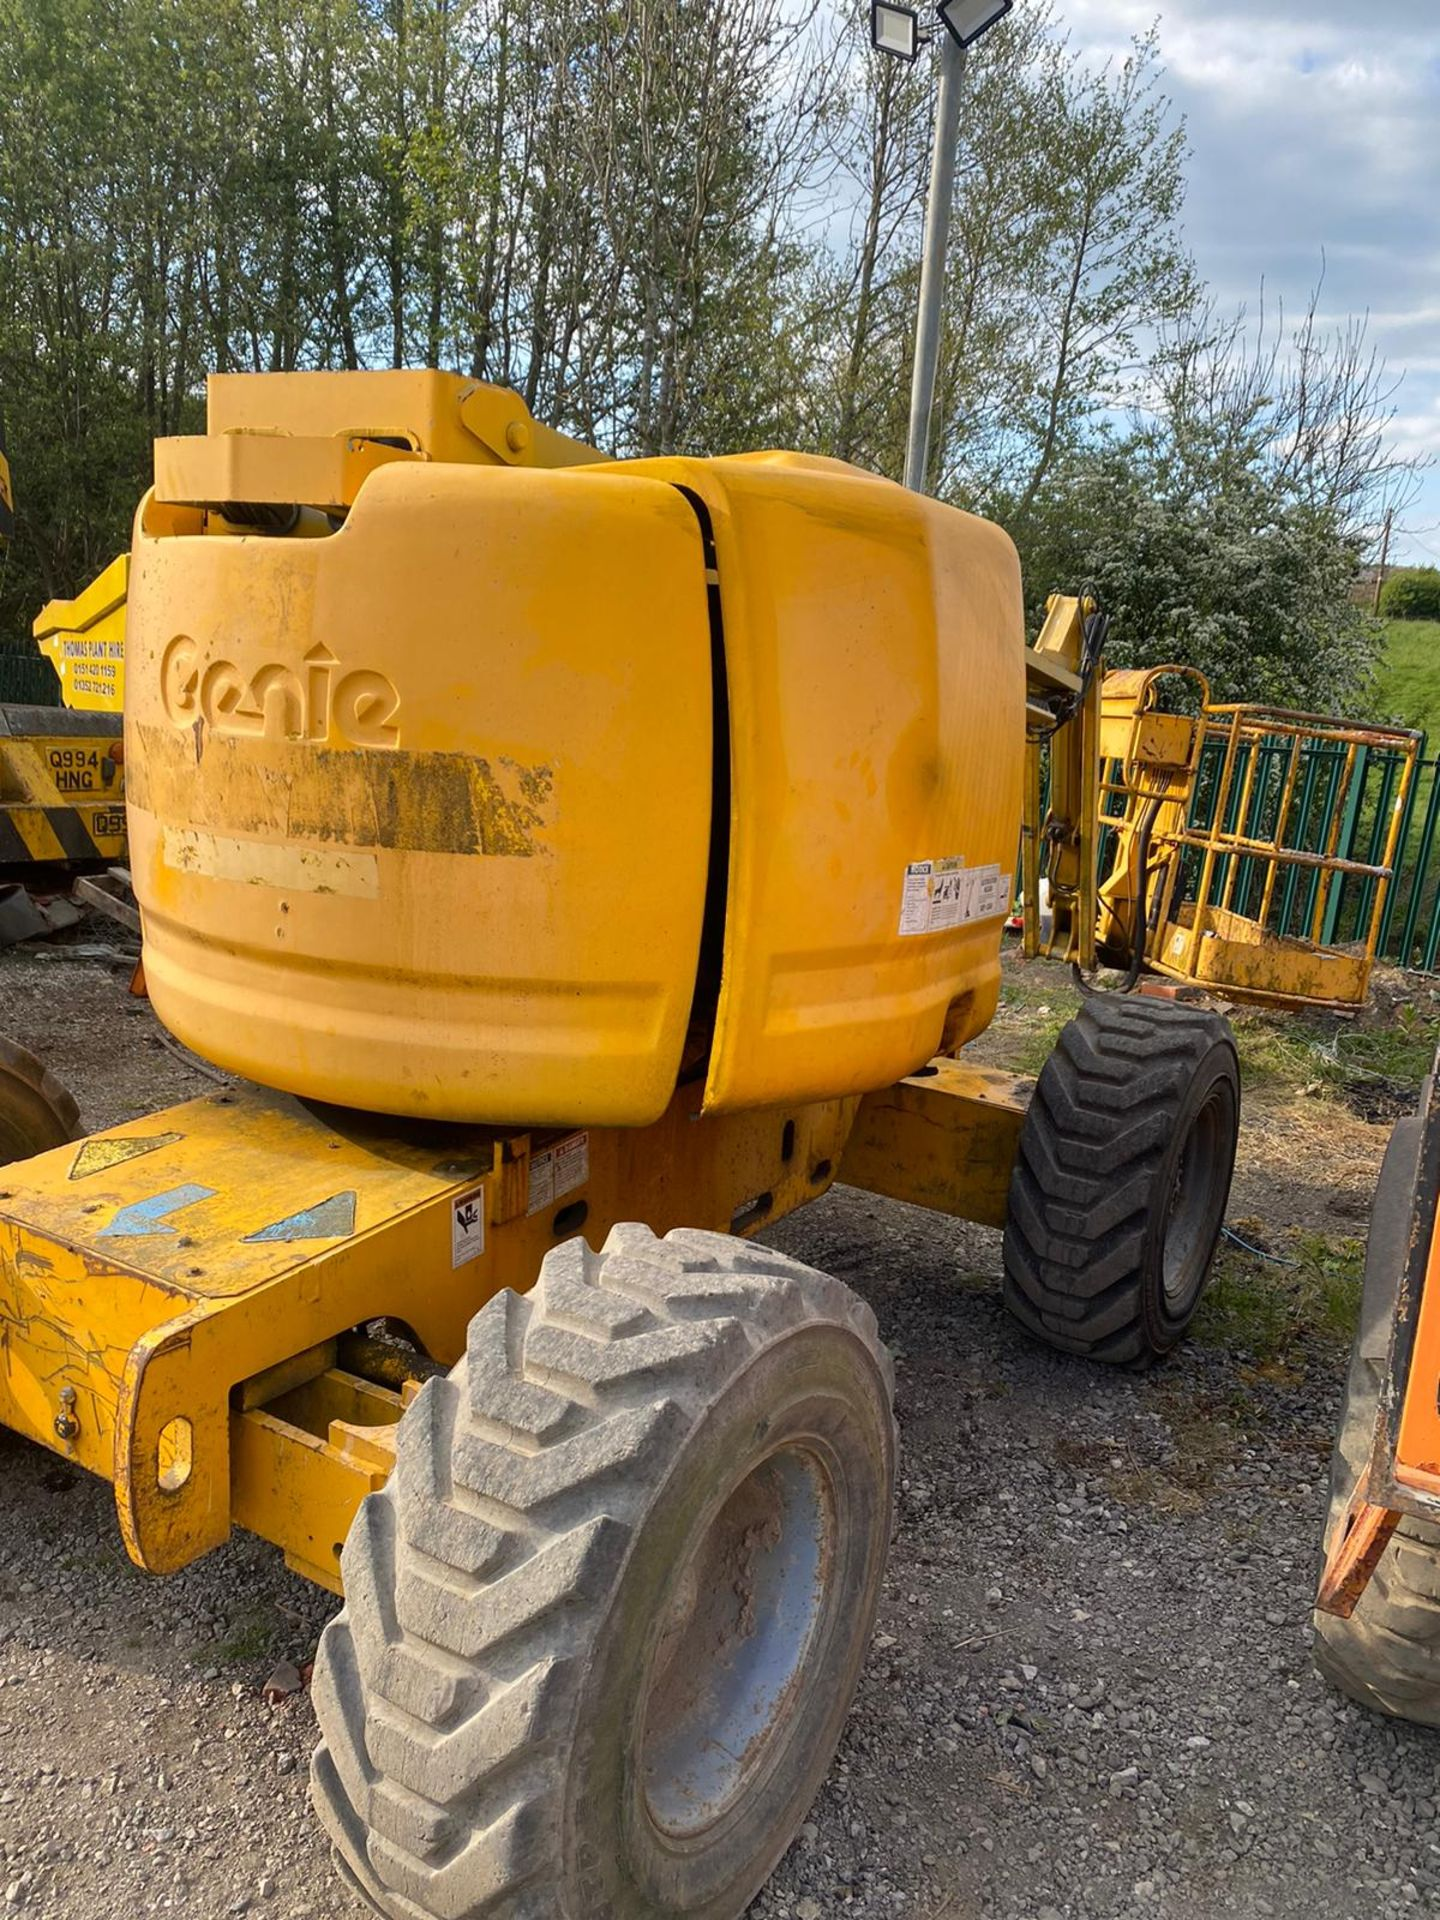 Lot 49 - GENIE Z45 ARTICULATED BOOM LIFT, 4 WHEEL DRIVE, RUNS, WORKS AND LIFTS, SHOWING 2657 HOURS *PLUS VAT*